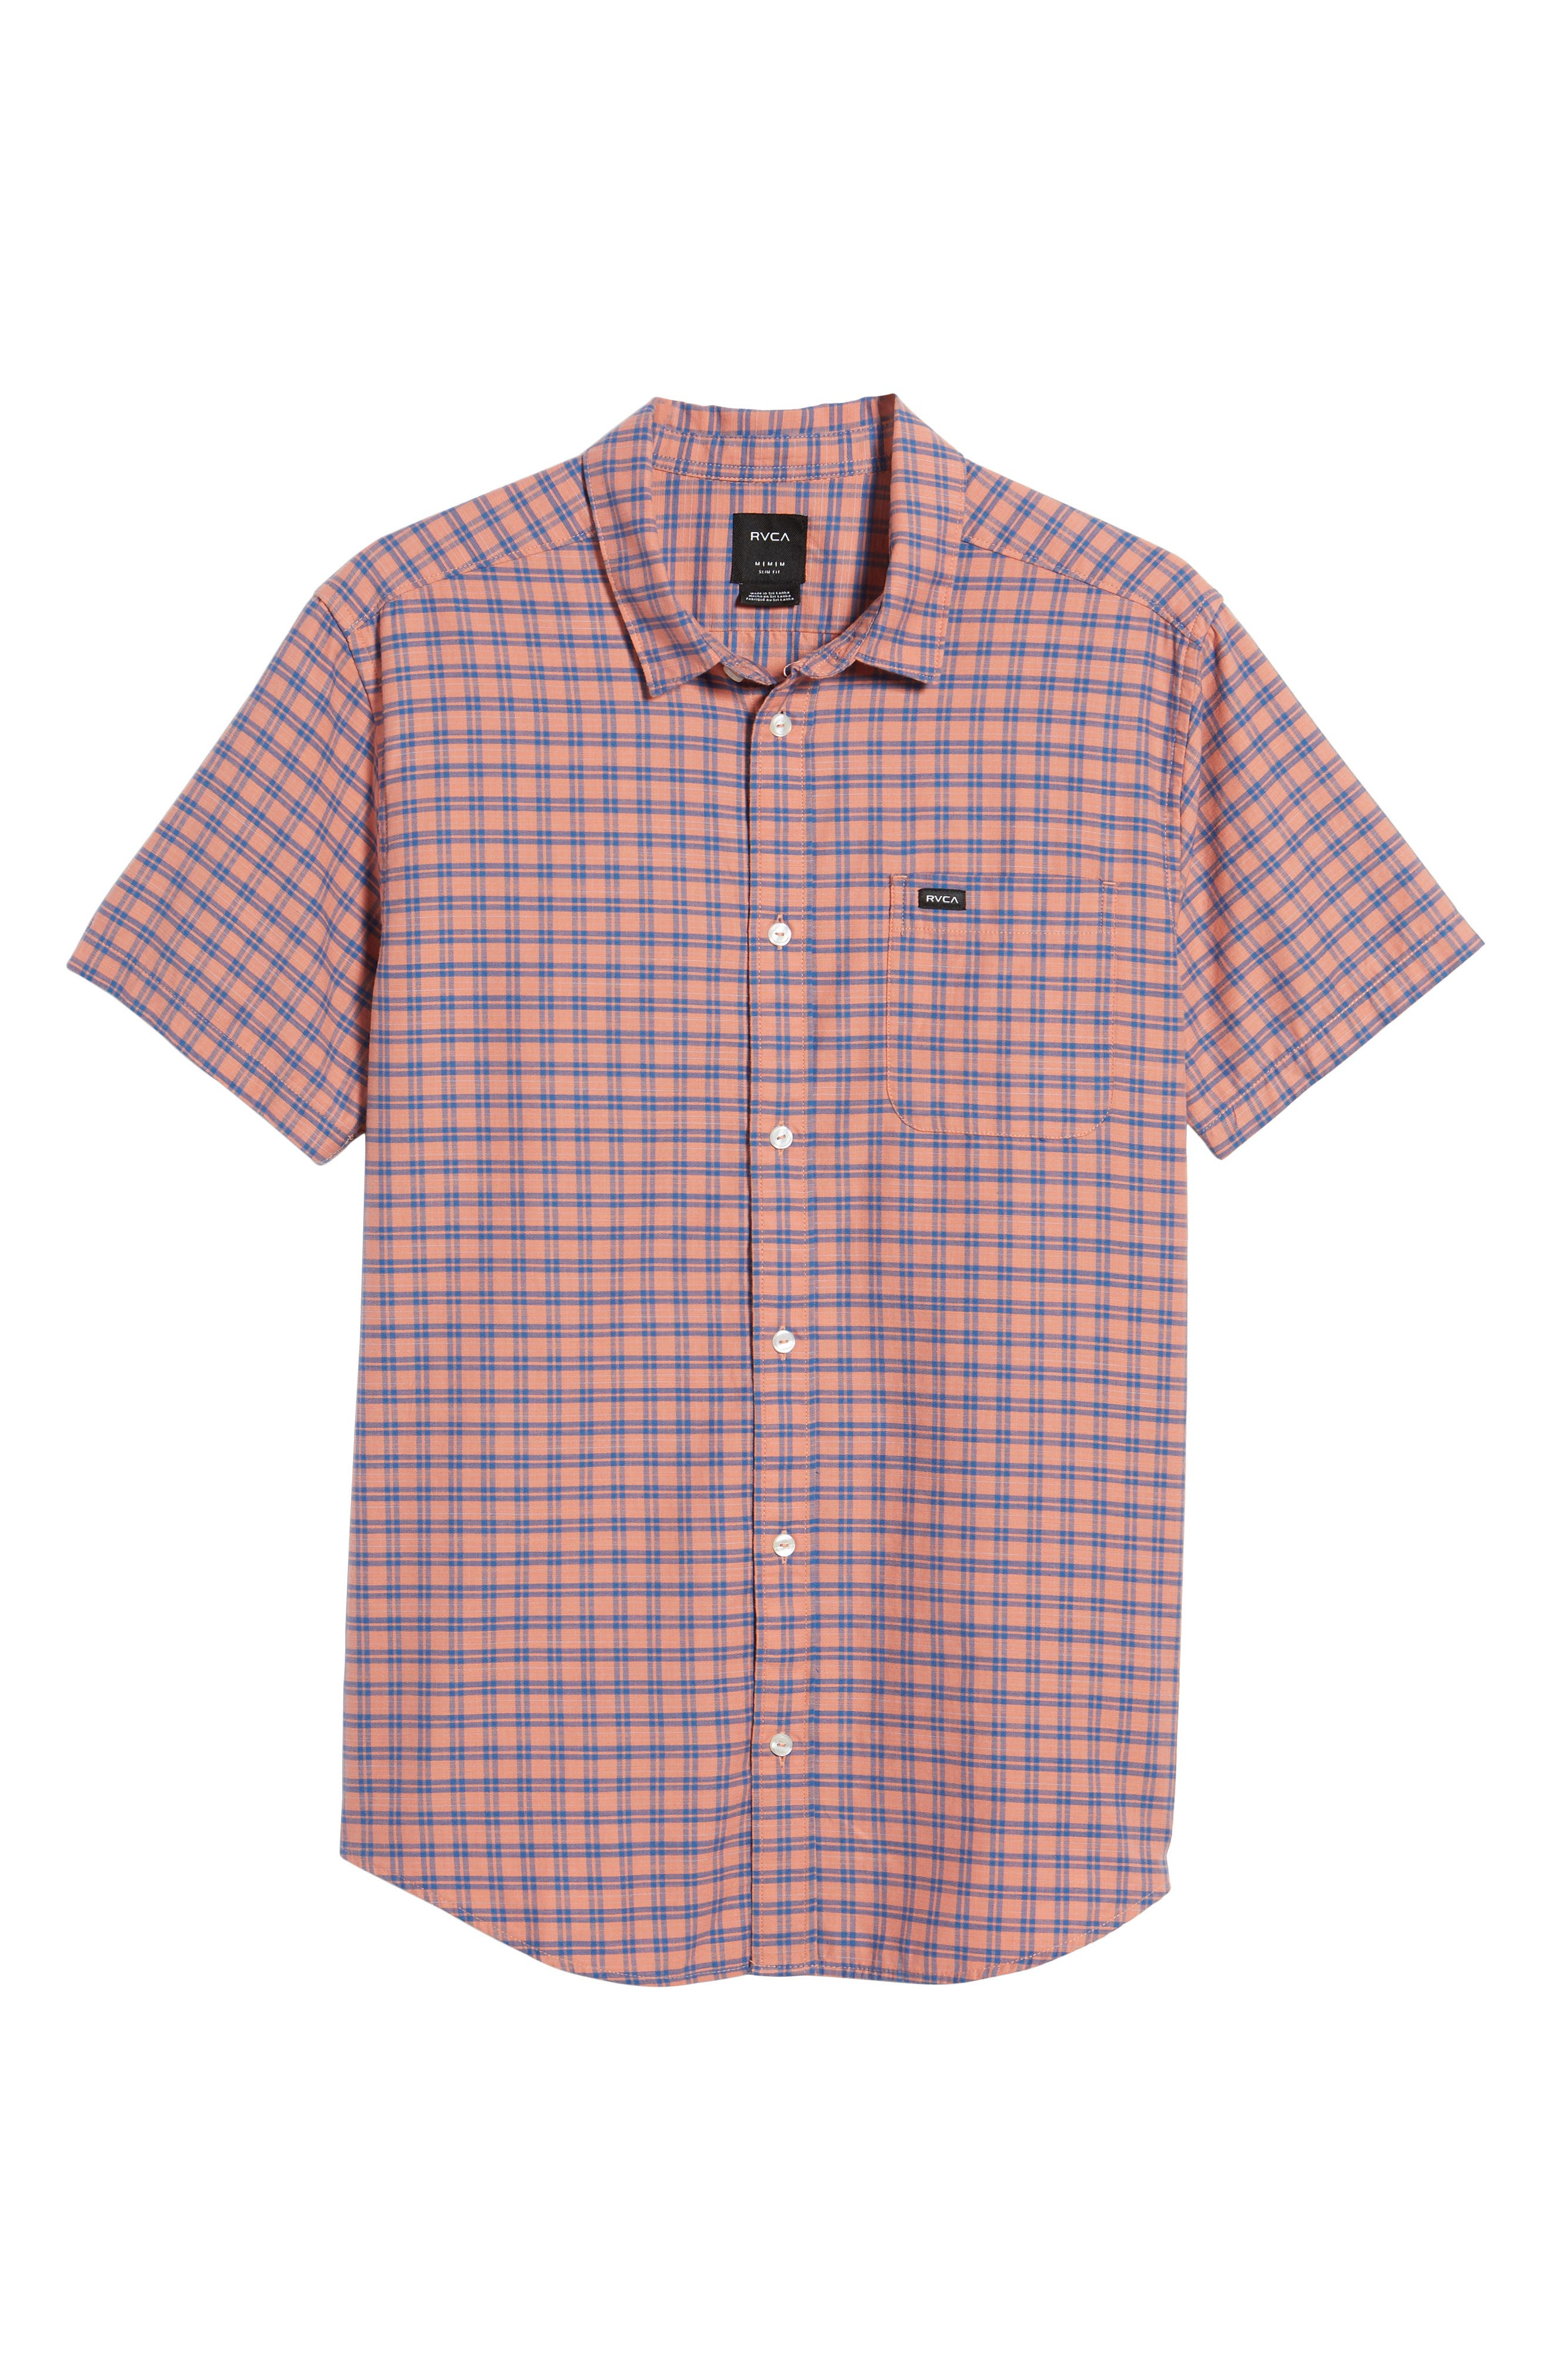 Delivery Woven Shirt,                             Alternate thumbnail 6, color,                             200